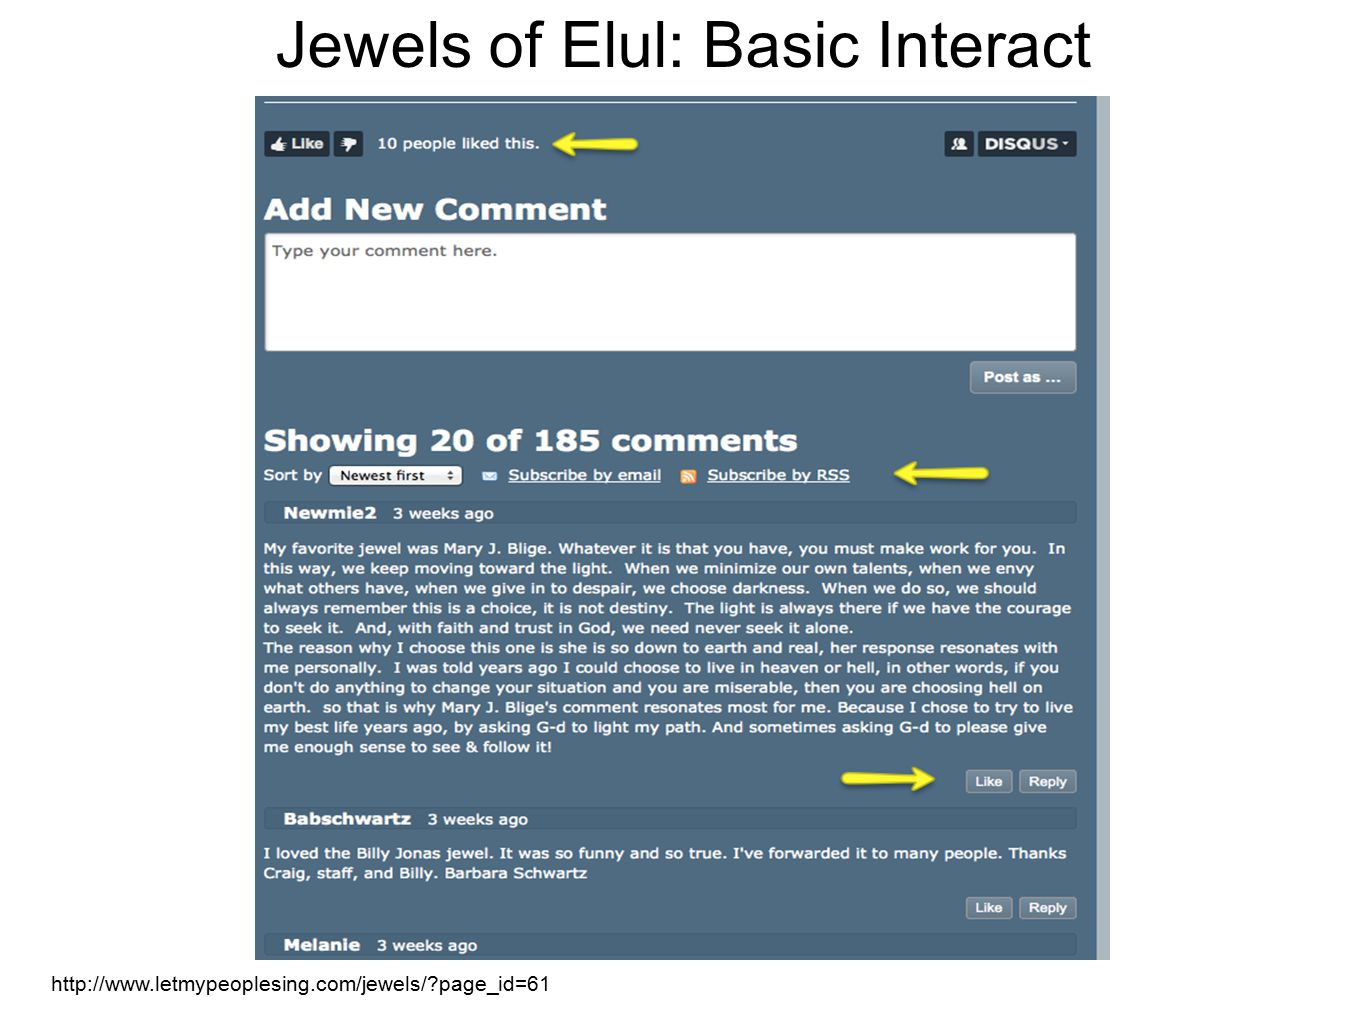 http://www.letmypeoplesing.com/jewels/ page_id=61 Jewels of Elul: Basic Interact